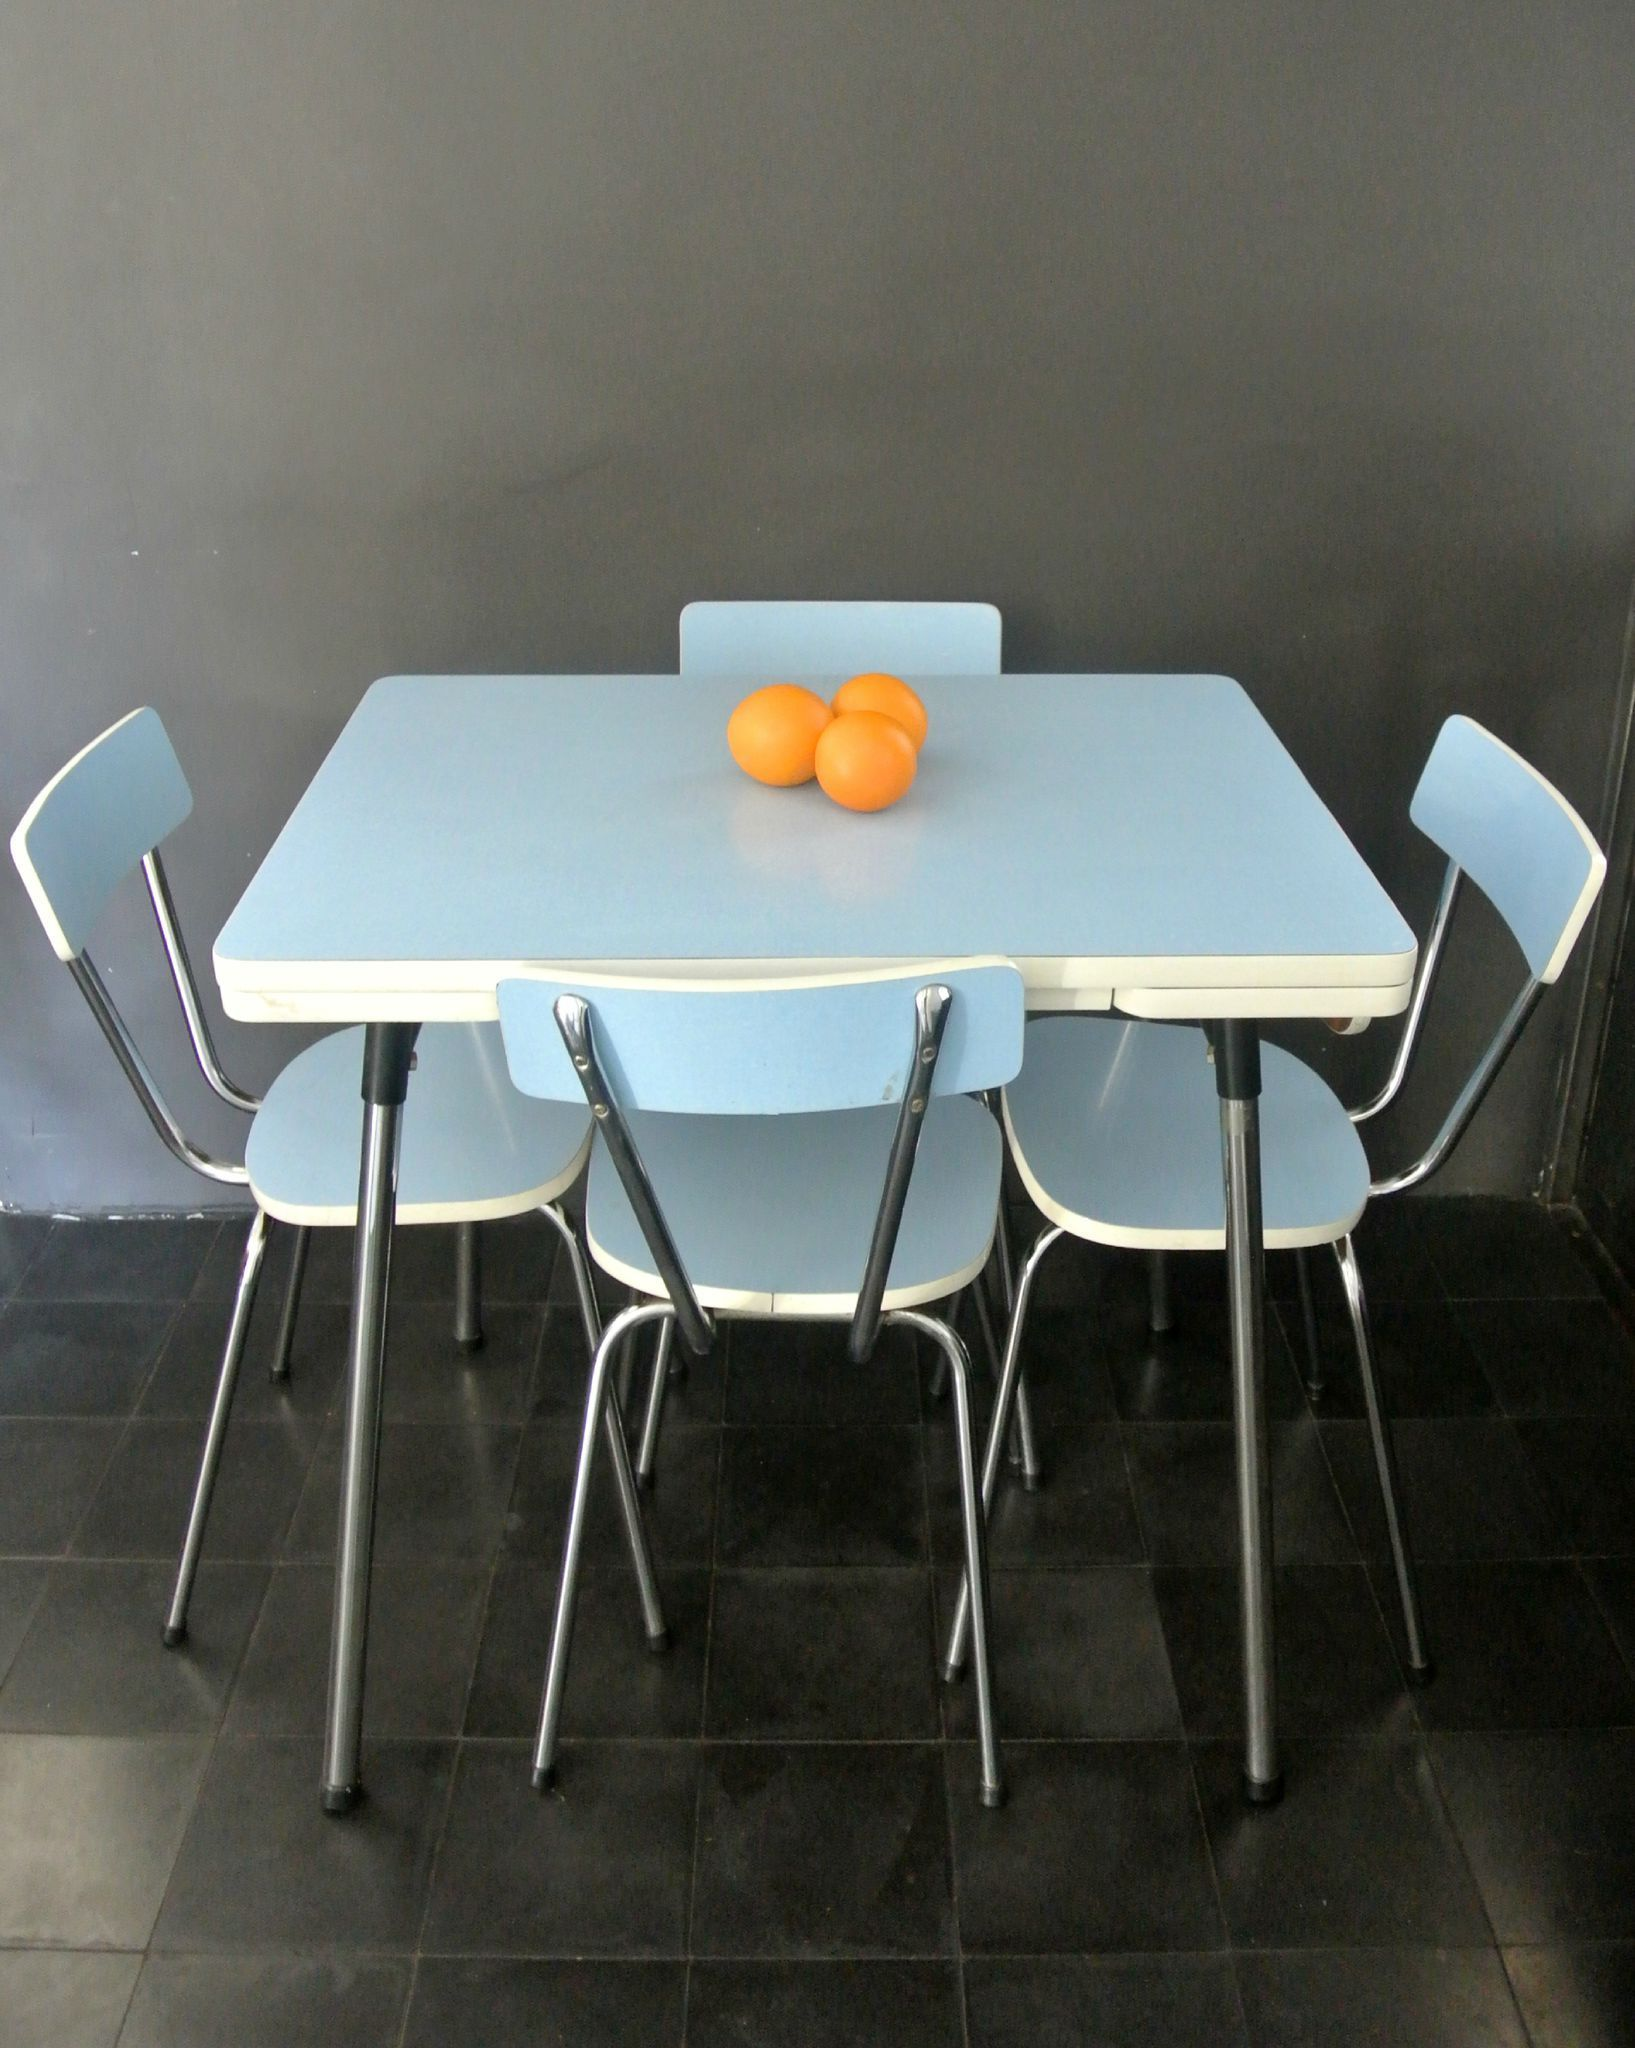 Cuisine Vintage Formica Table Cuisine Formica Anne 50 Affordable Cuisine Formica Vintage